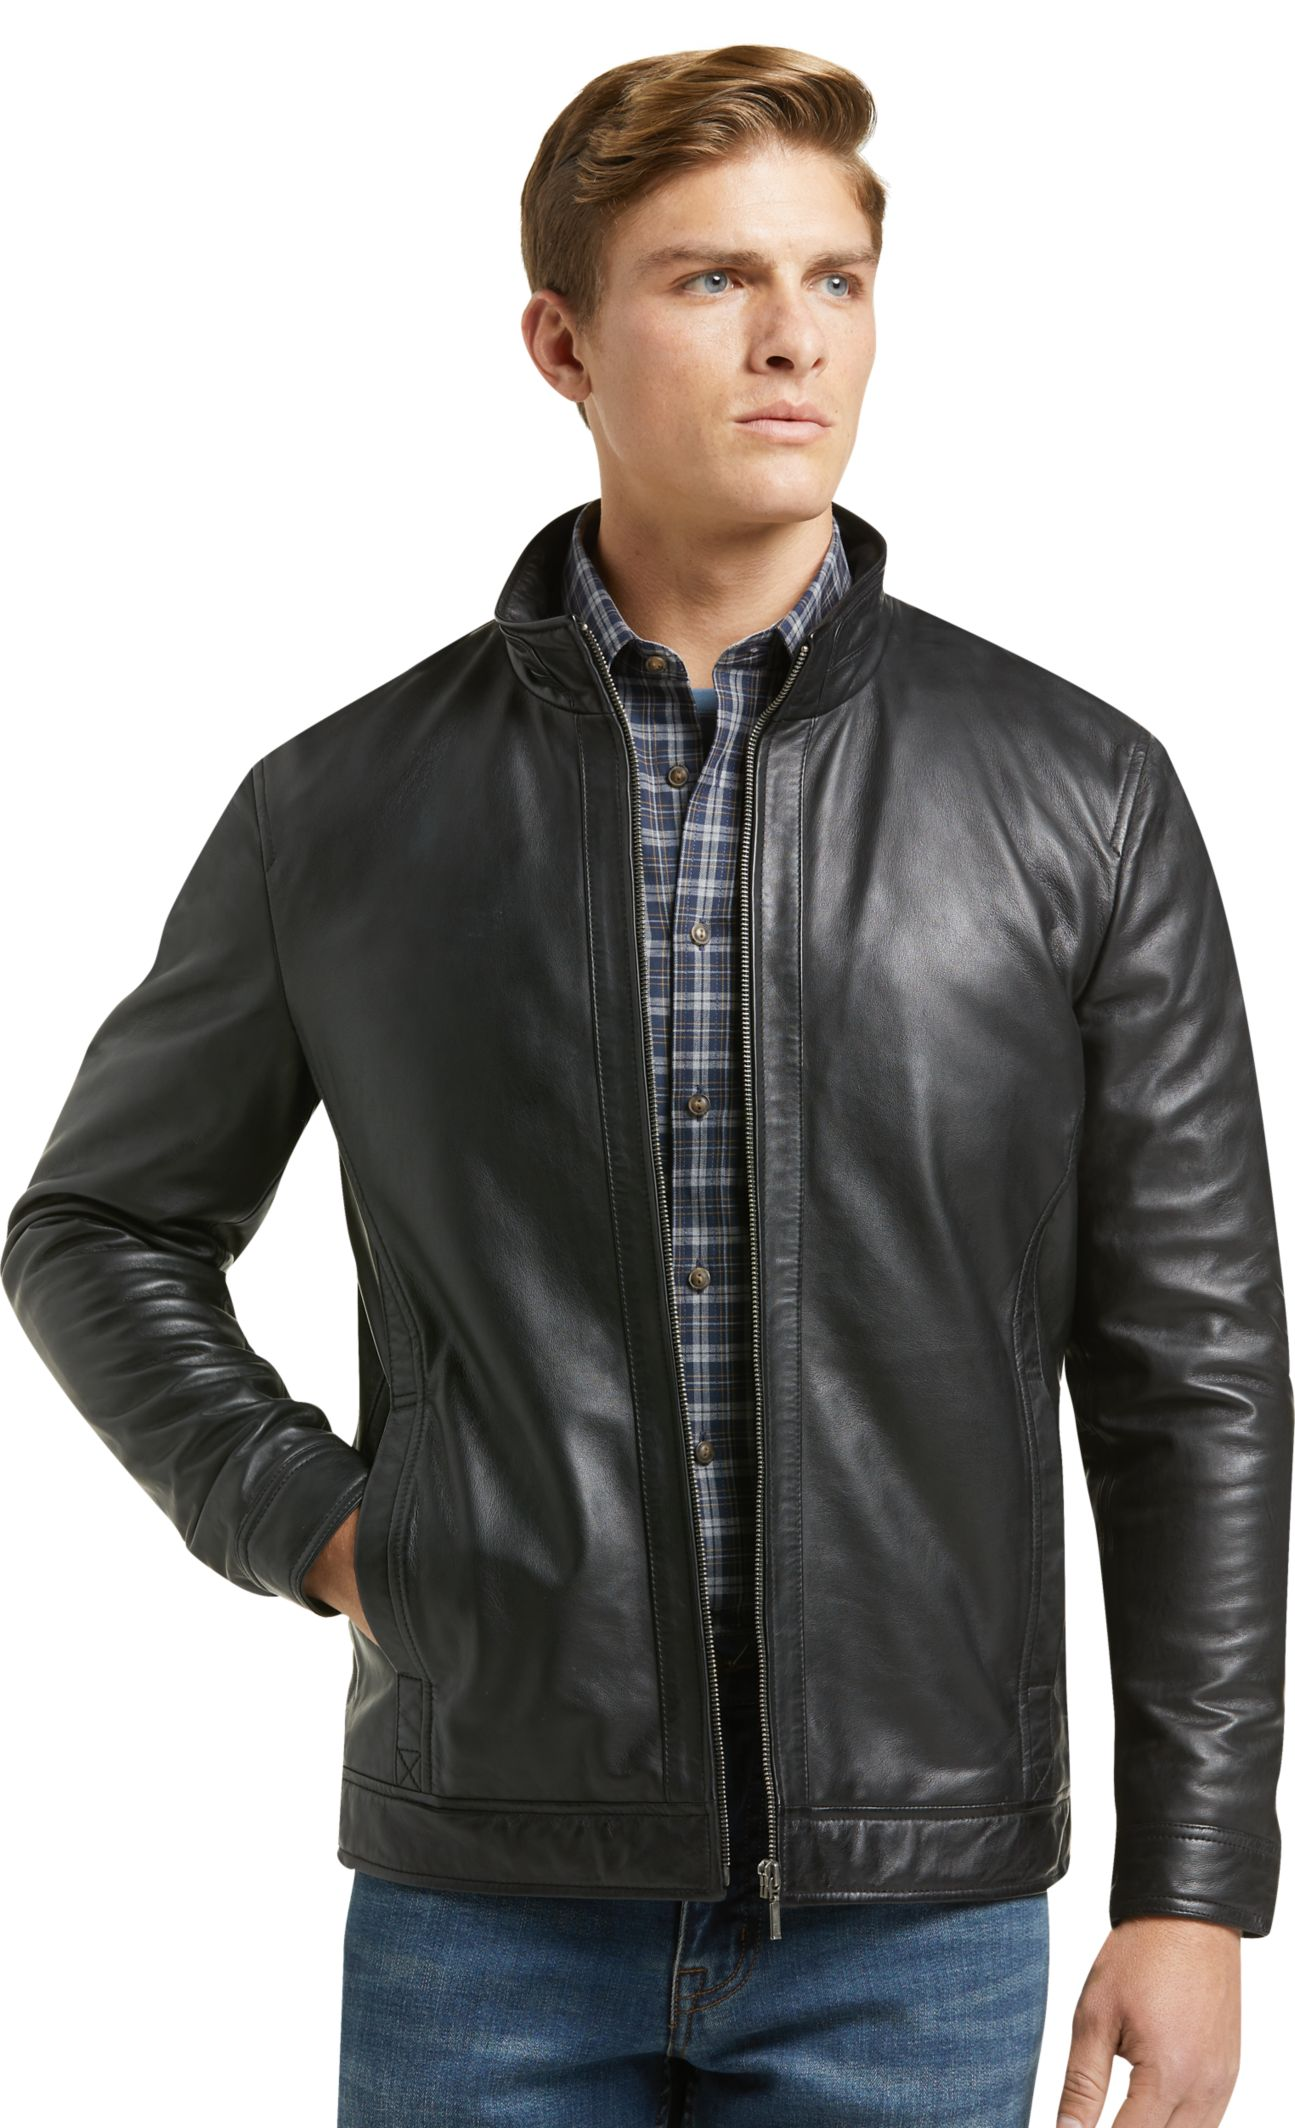 1905 Collection Tailored Fit Leather Bomber Jacket Big